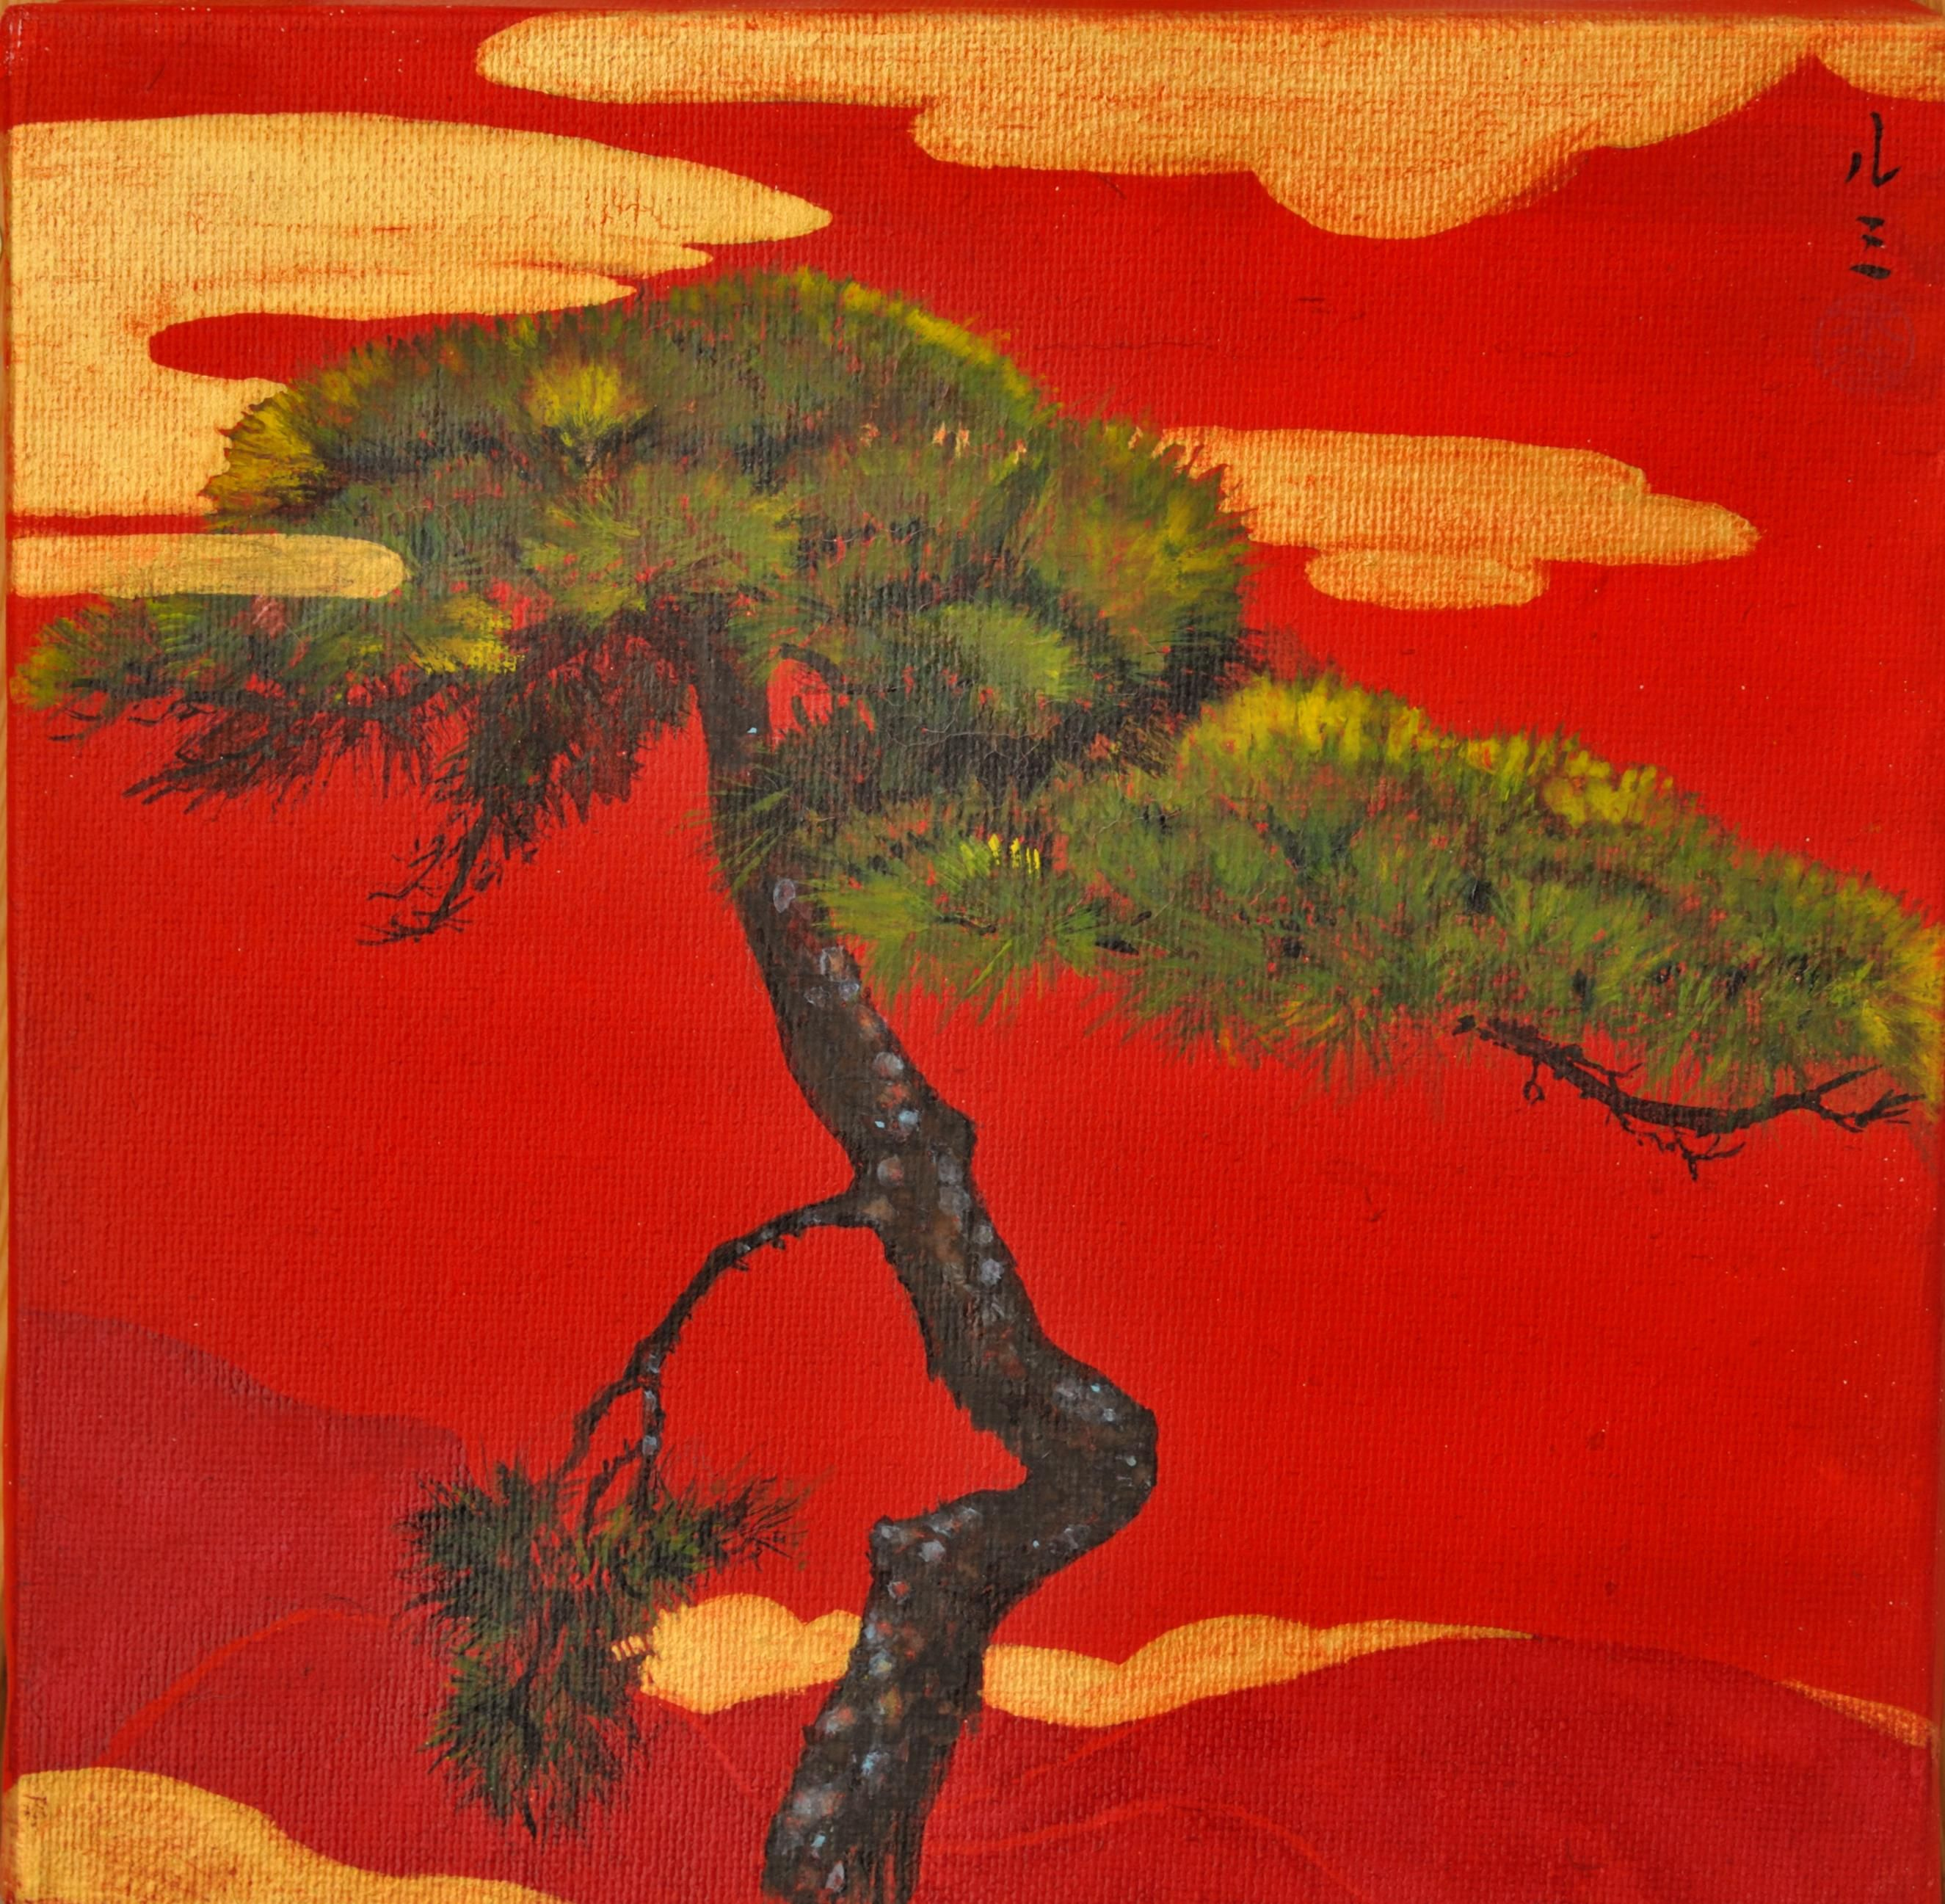 Pine Tree with Palace,Lumi Mizutani,Painting